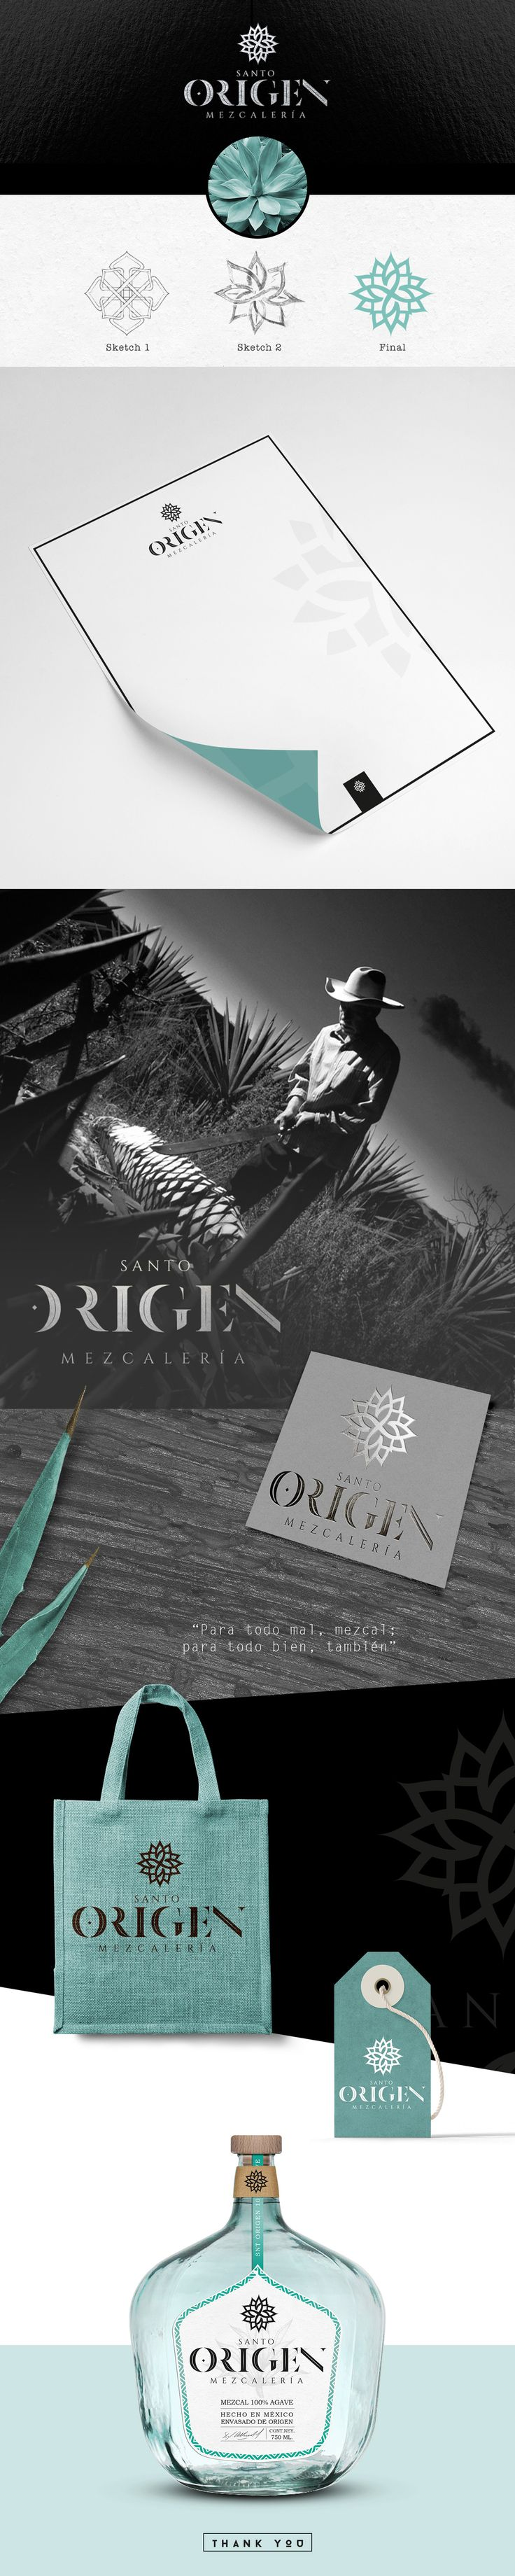 Graphic design, branding and packaging for MEZCAL SANTO ORIGEN on Behance by Zure Studio, Mexico. How beautiful is this packaging? PD